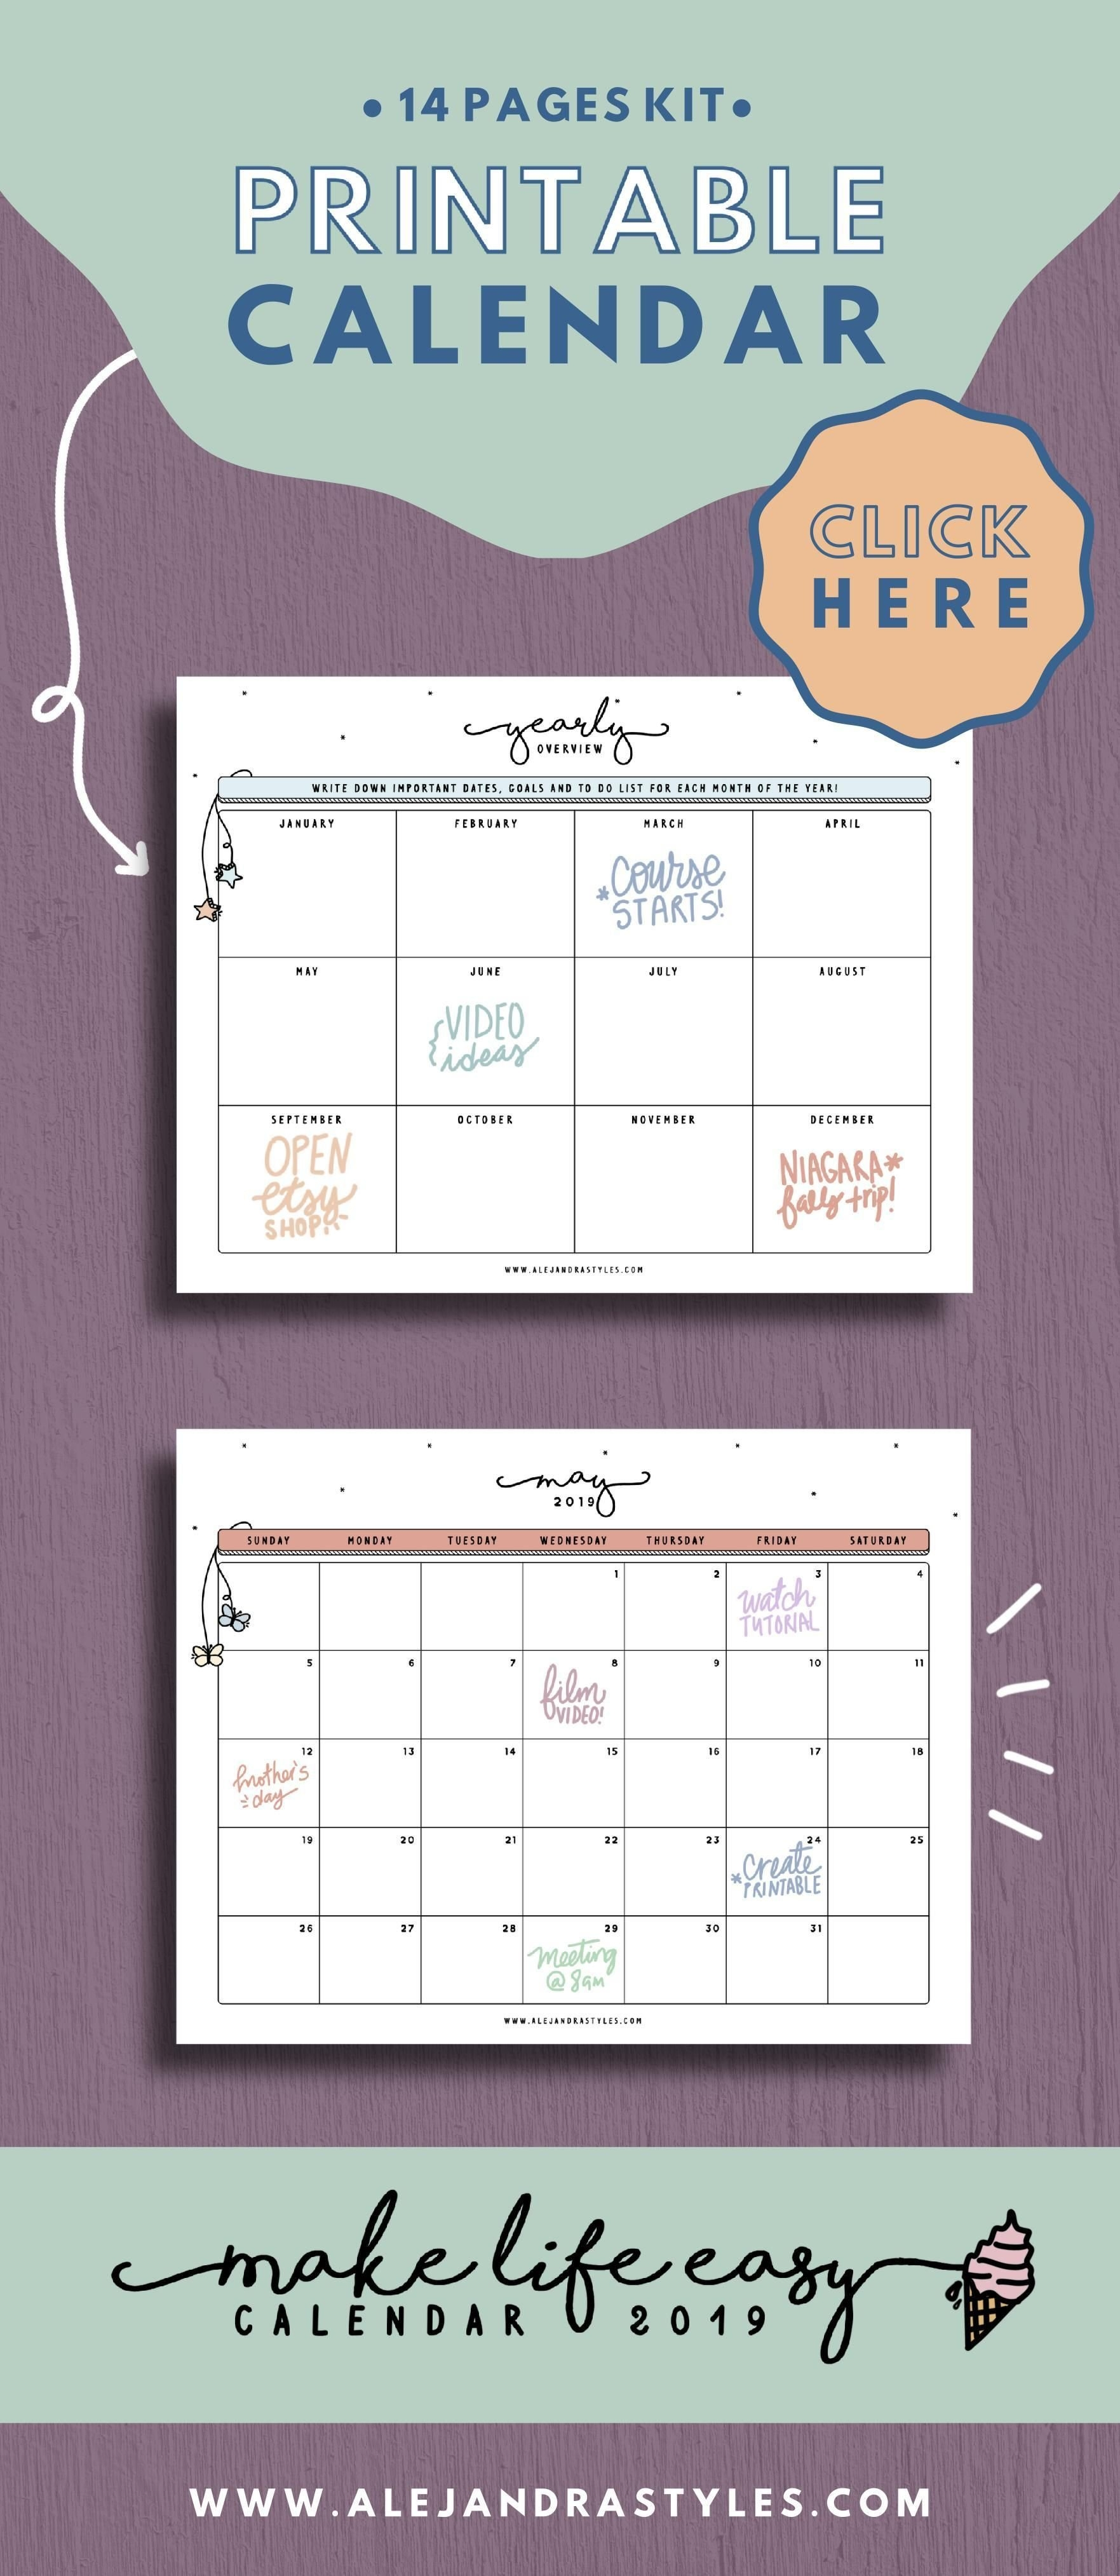 2019 Calendar Printable Planner For Desk Or Wall | Monday And Sunday Busy B Desktop Calendar 2019